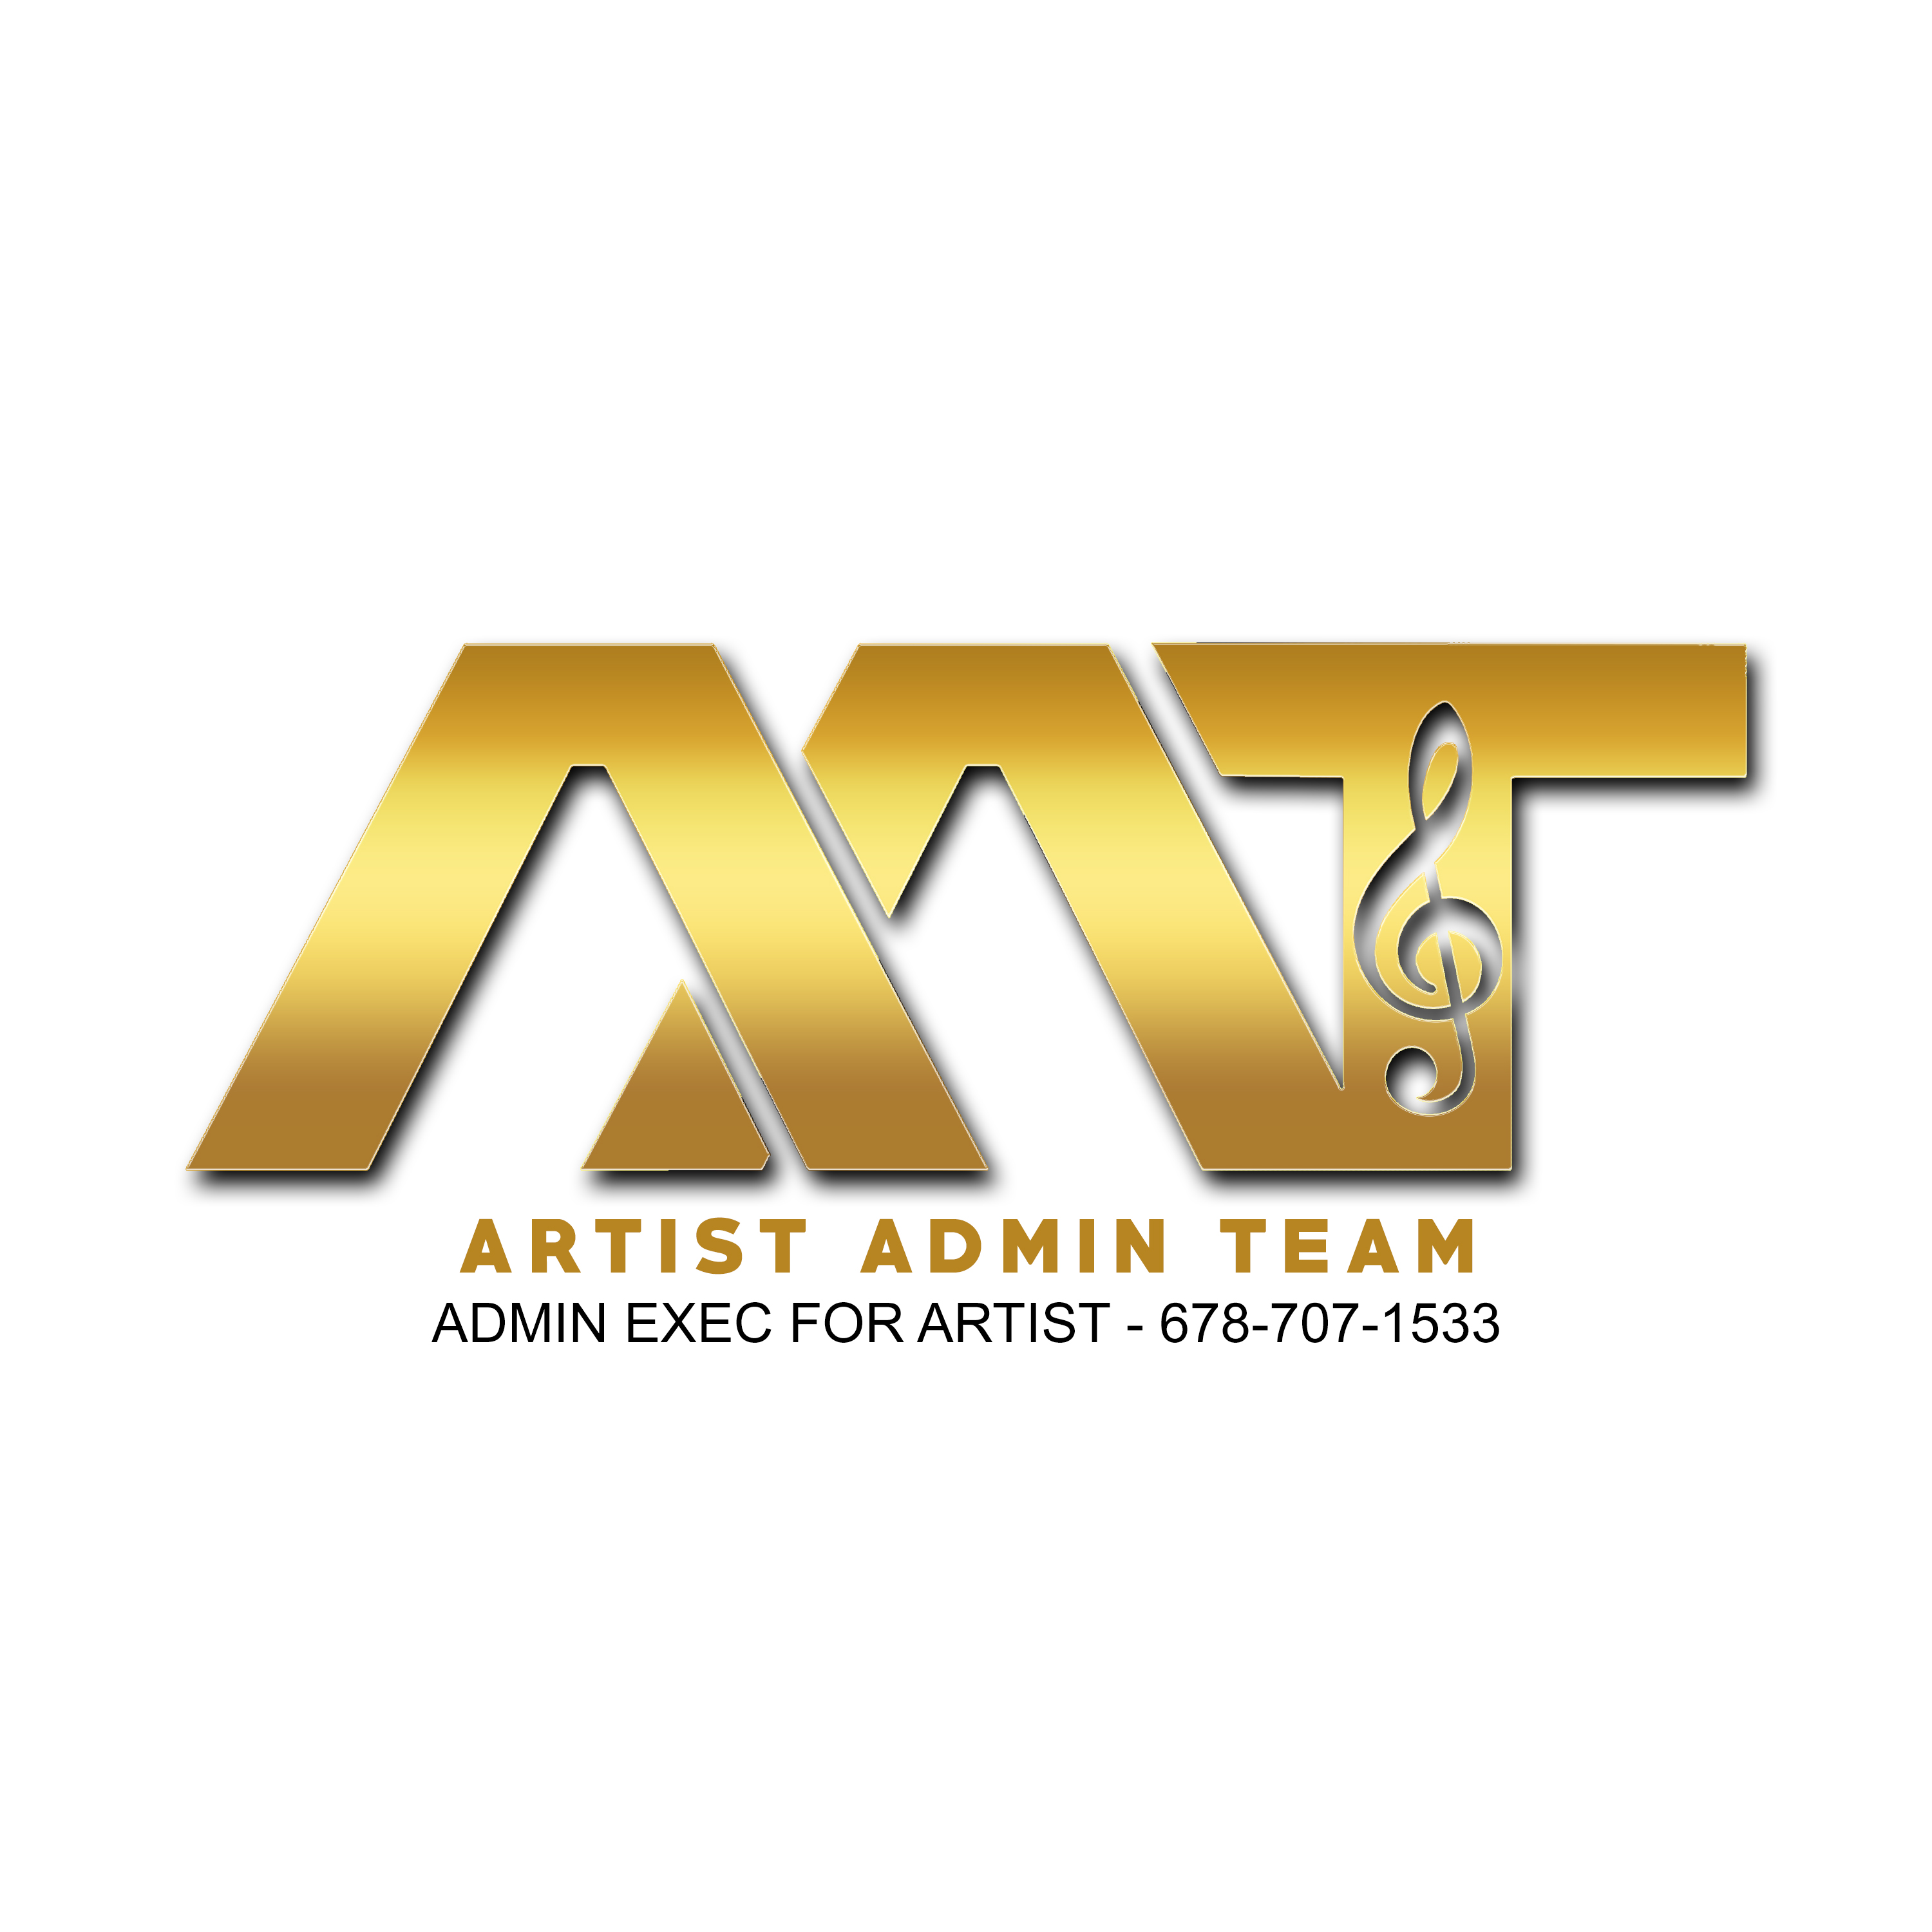 Ensuring the peace of mind, Artist Admin Team handles various administrative tasks for artists